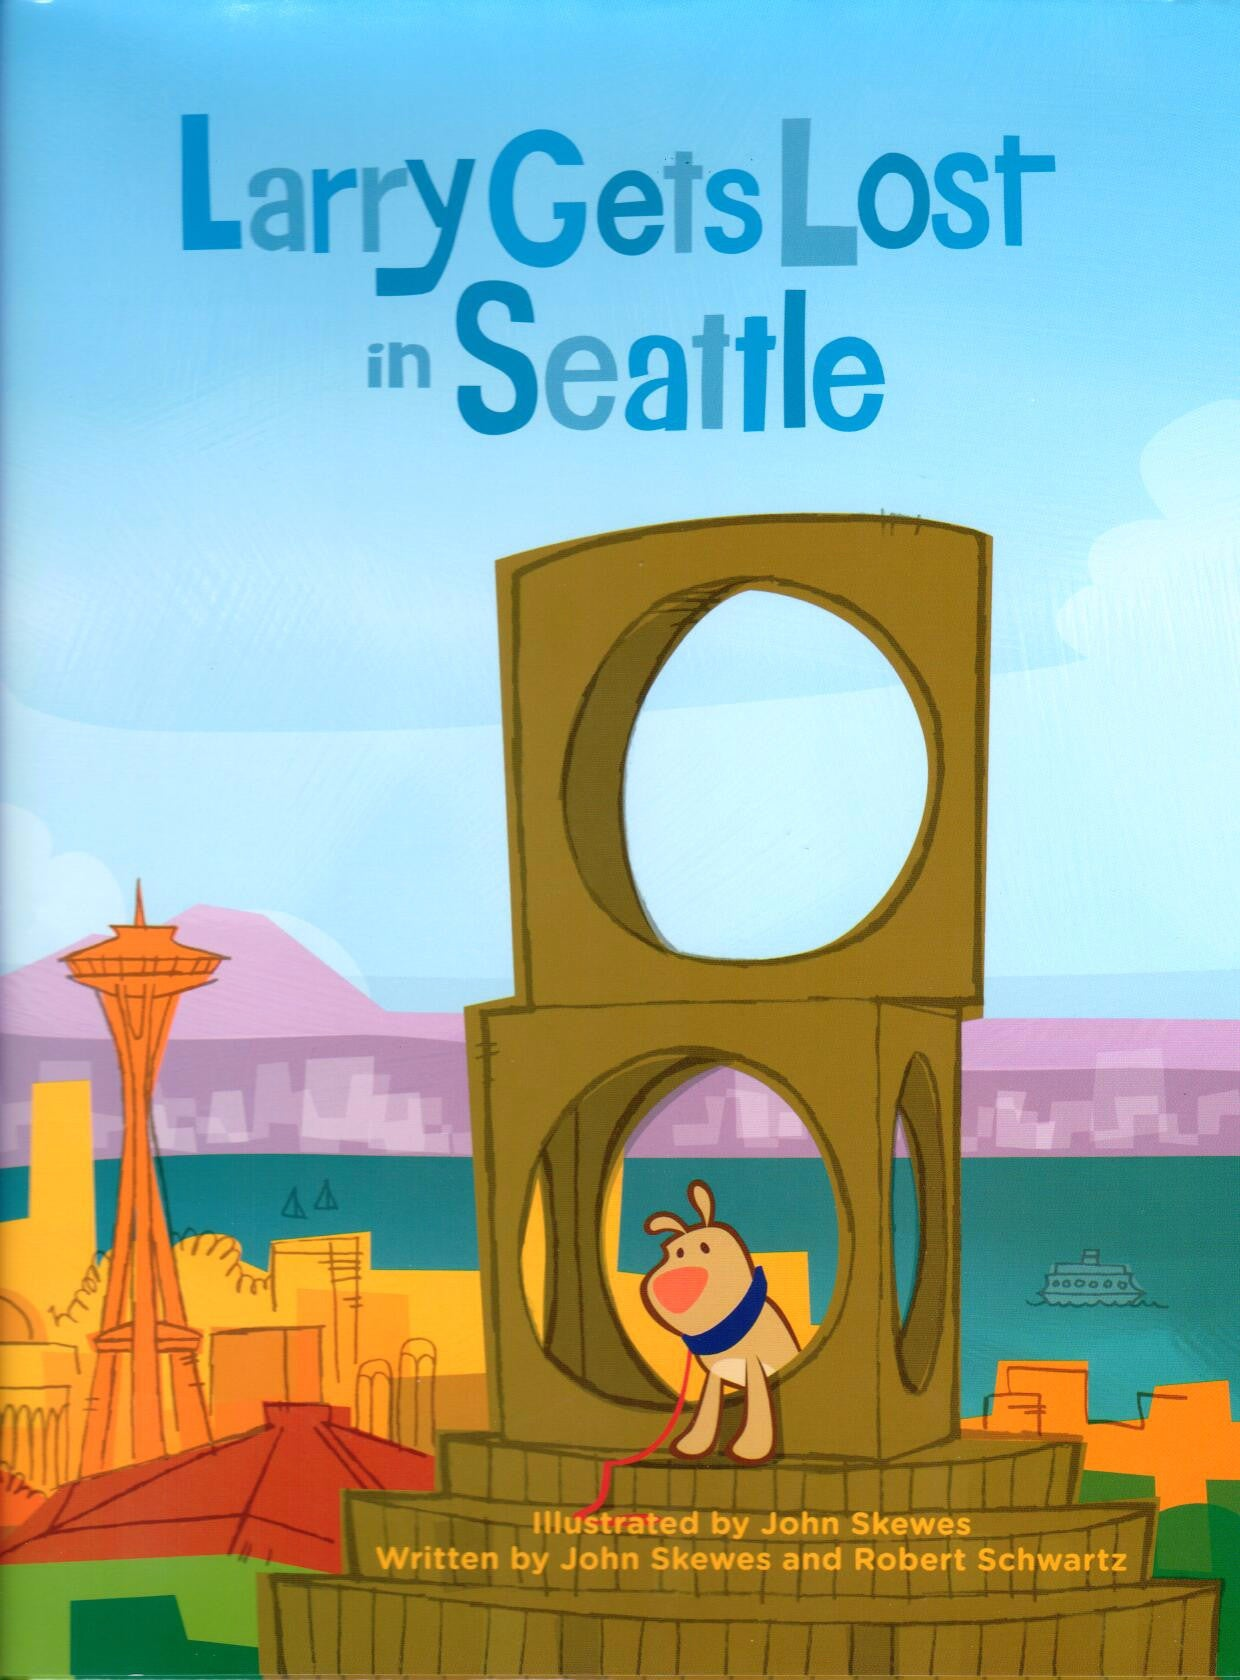 Larry Gets Lost in Seattle, Illustrated by John Skewes, Written by John Skewes and Robert Schwartz - Washington State Historical Society